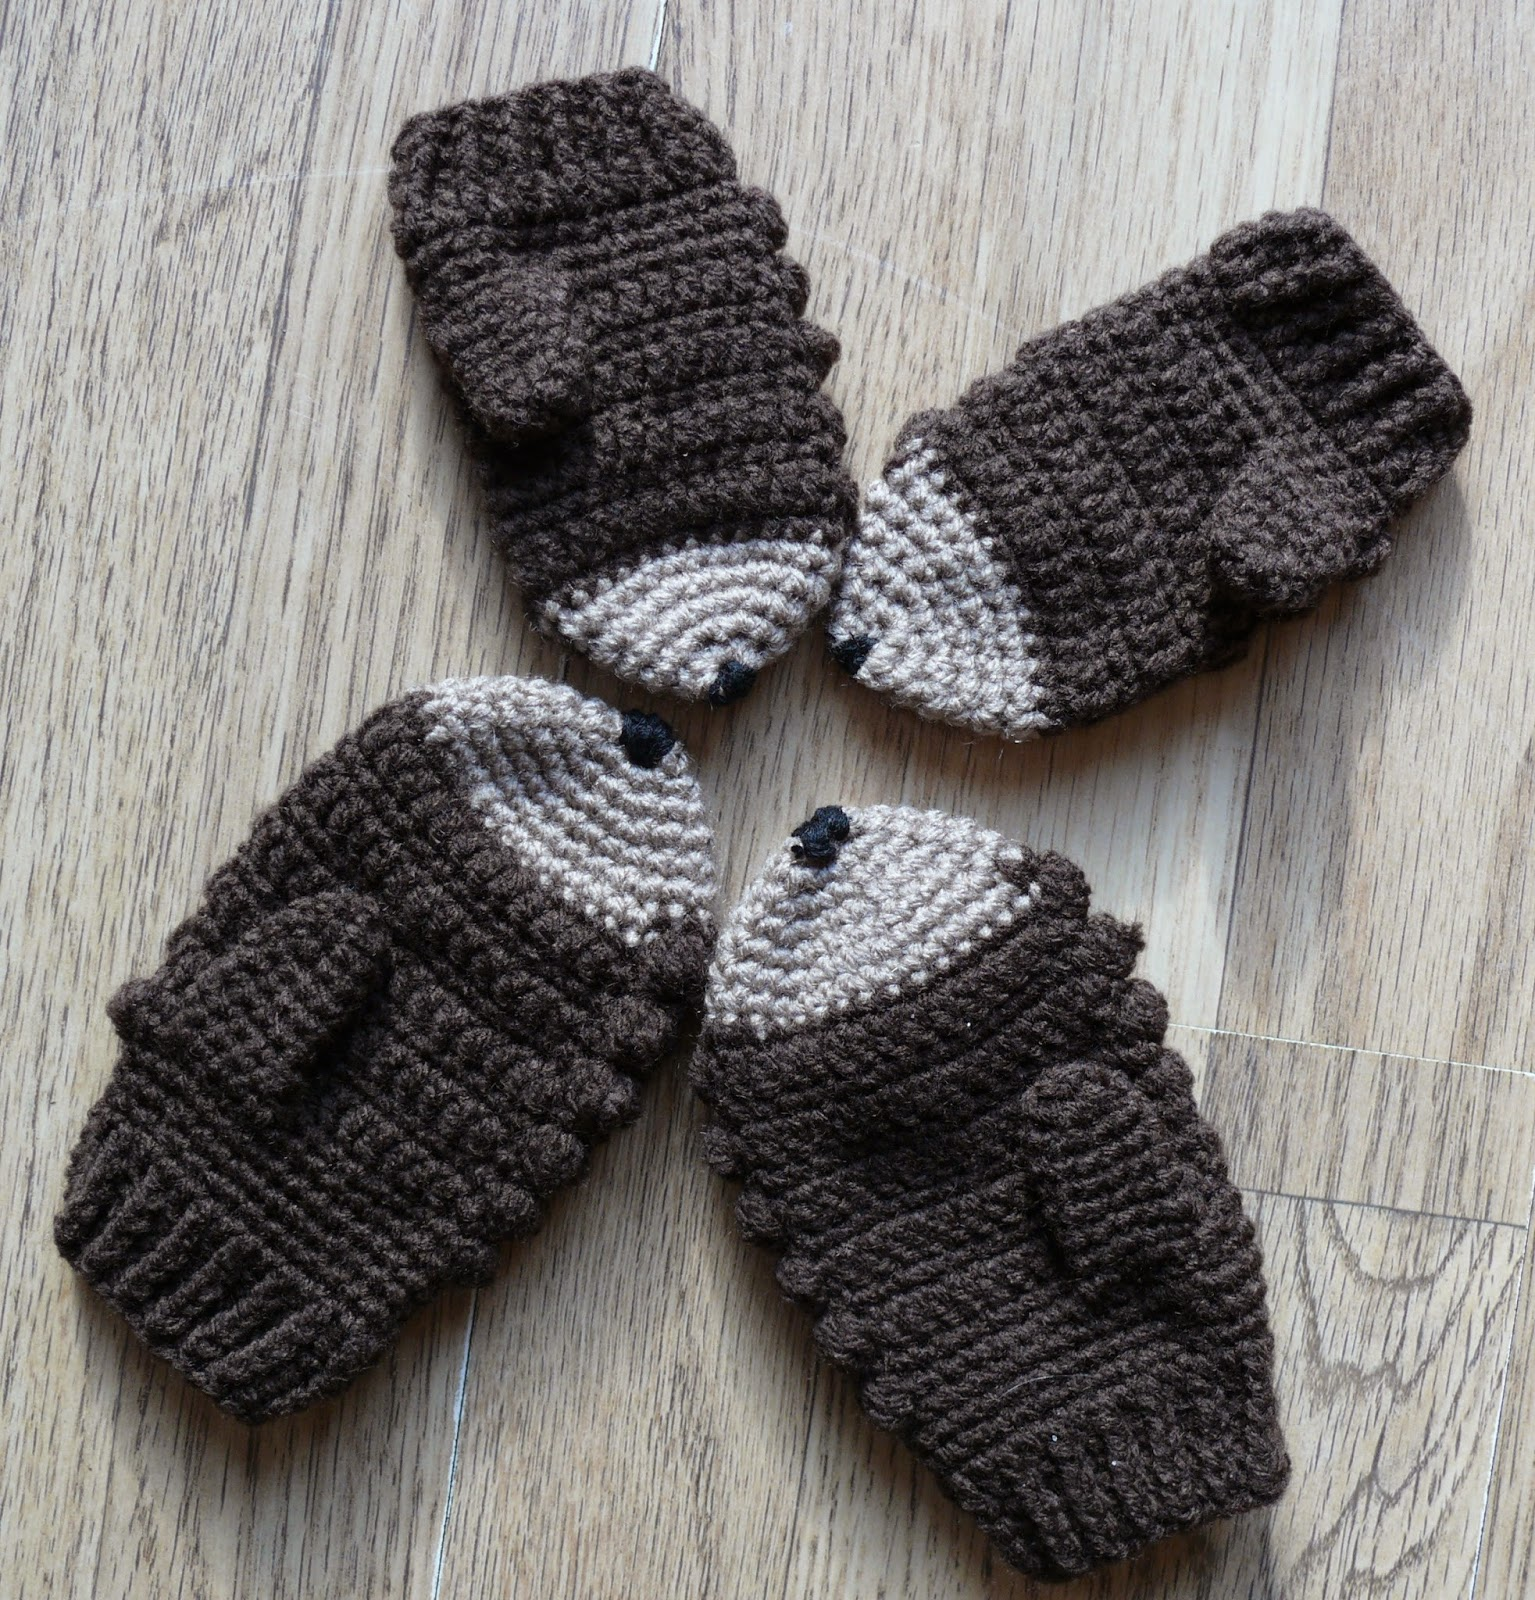 Knitting Pattern Hedgehog Mittens : Hedgehog Mittens For Sale images